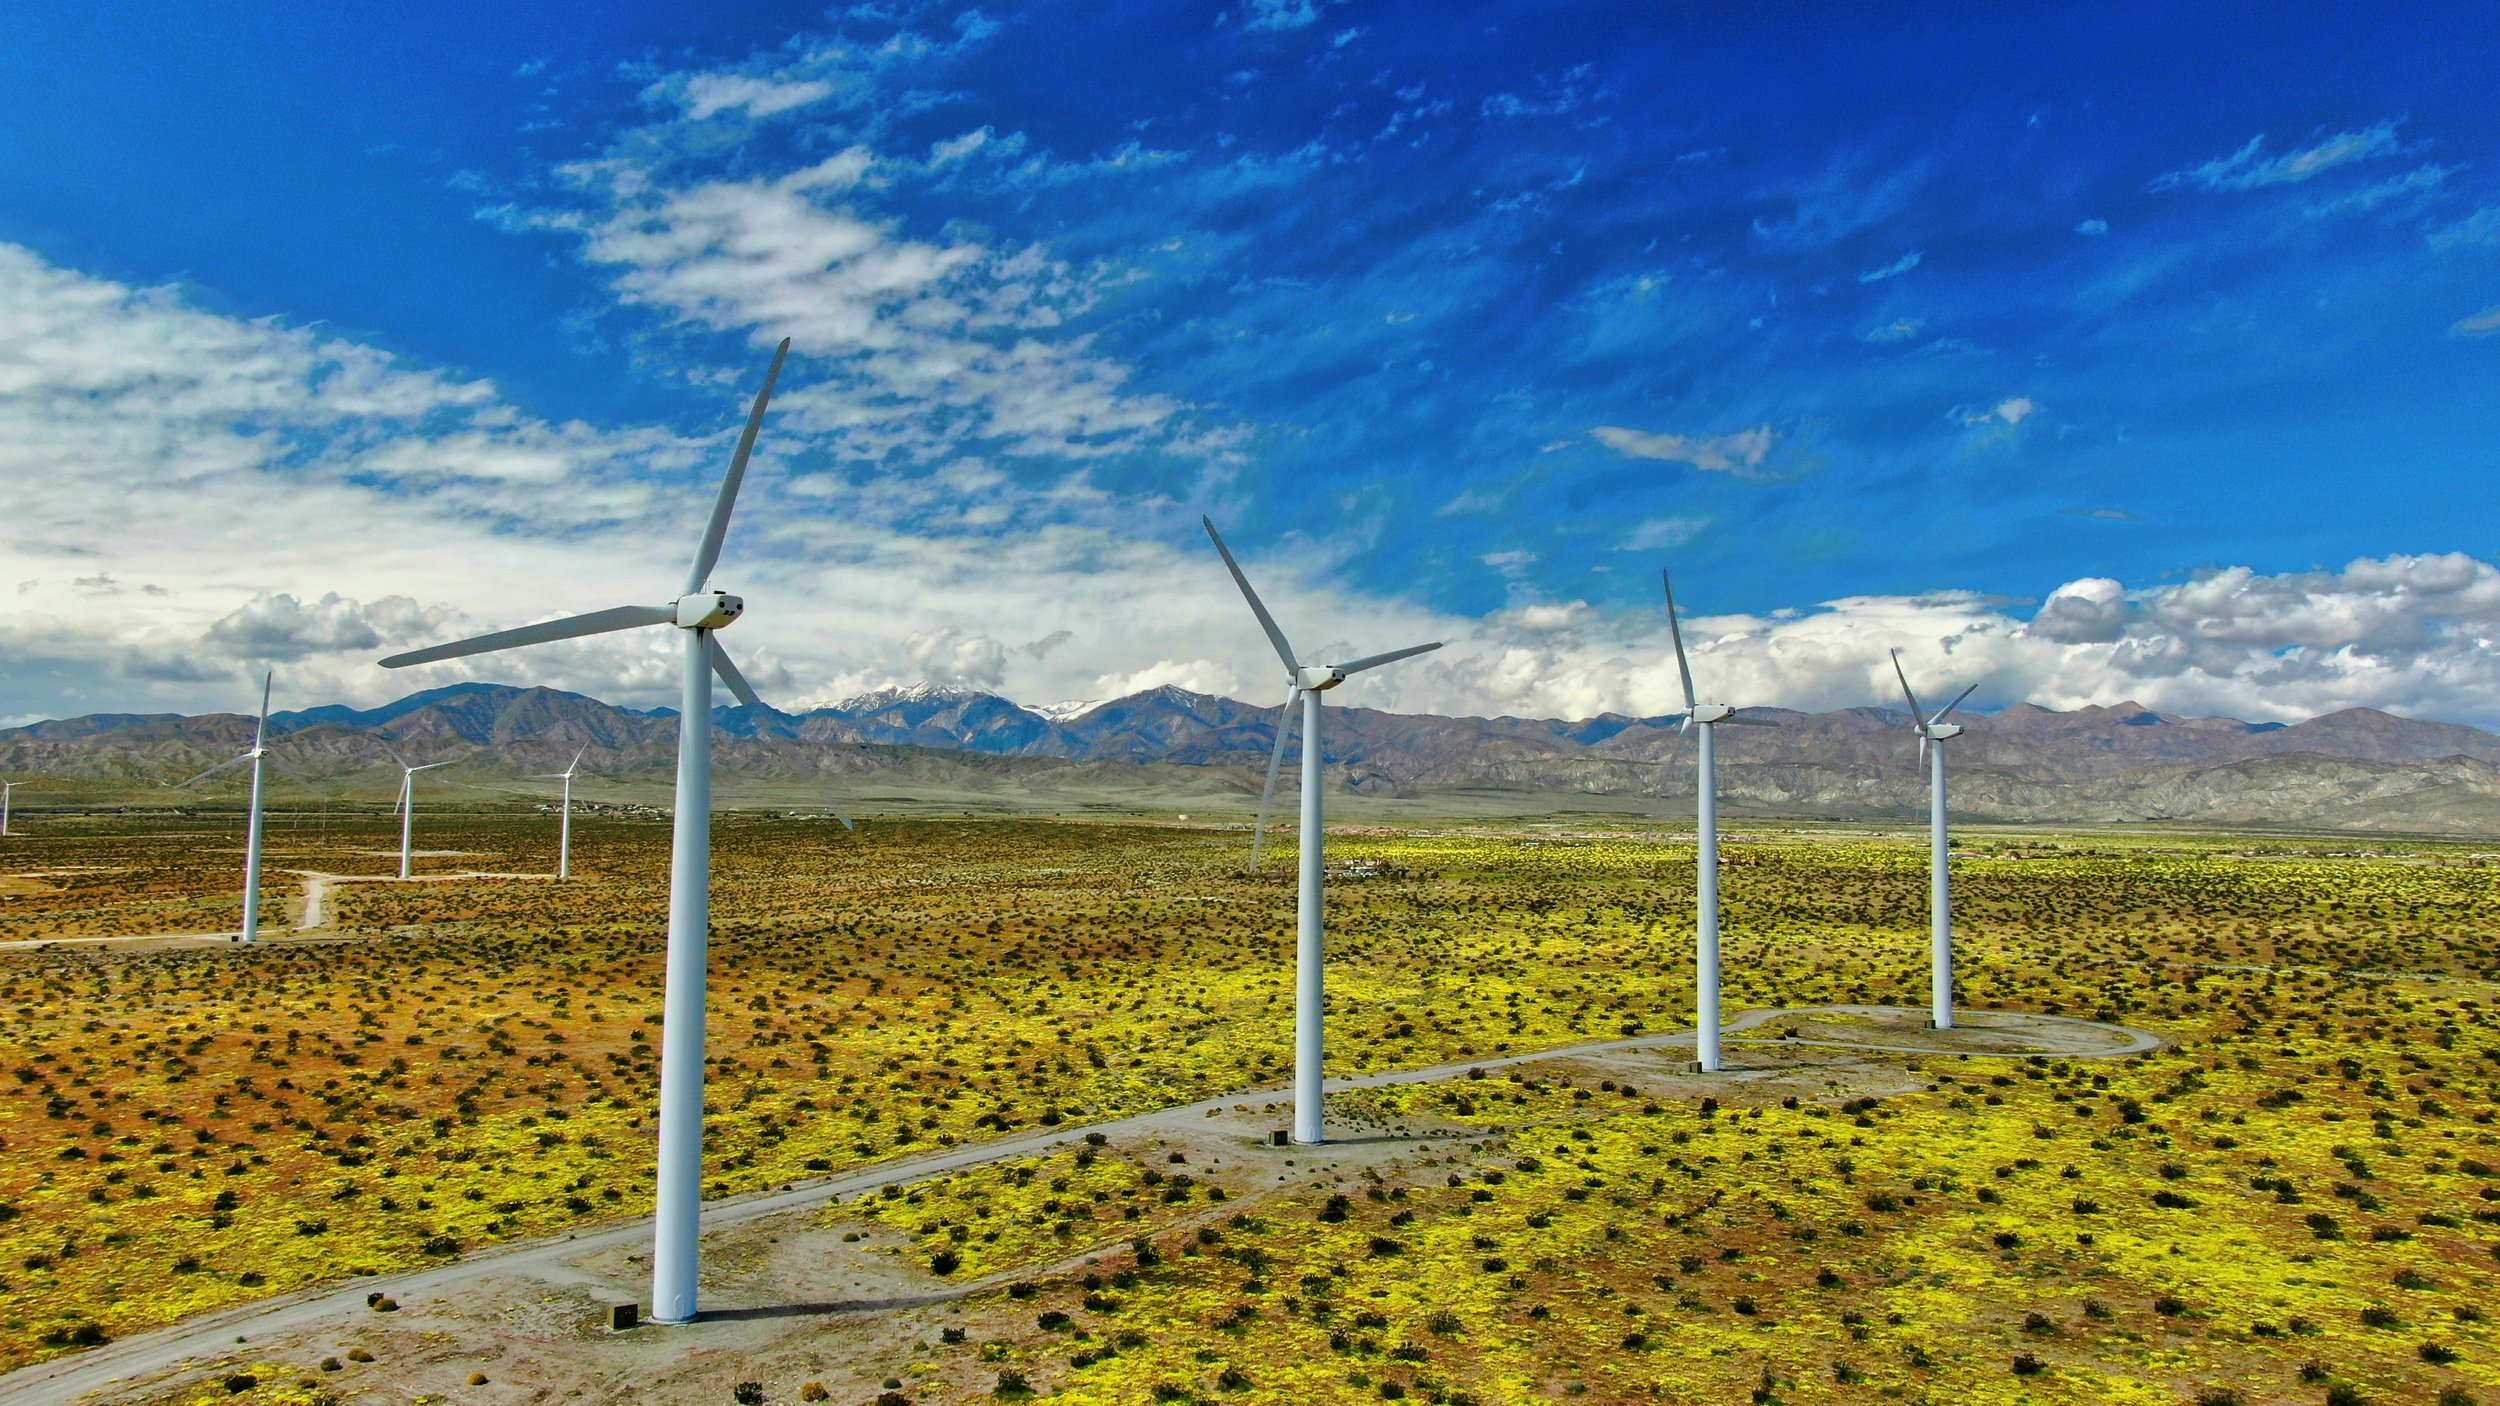 Wind  Farm Inspections Palm Springs, California.